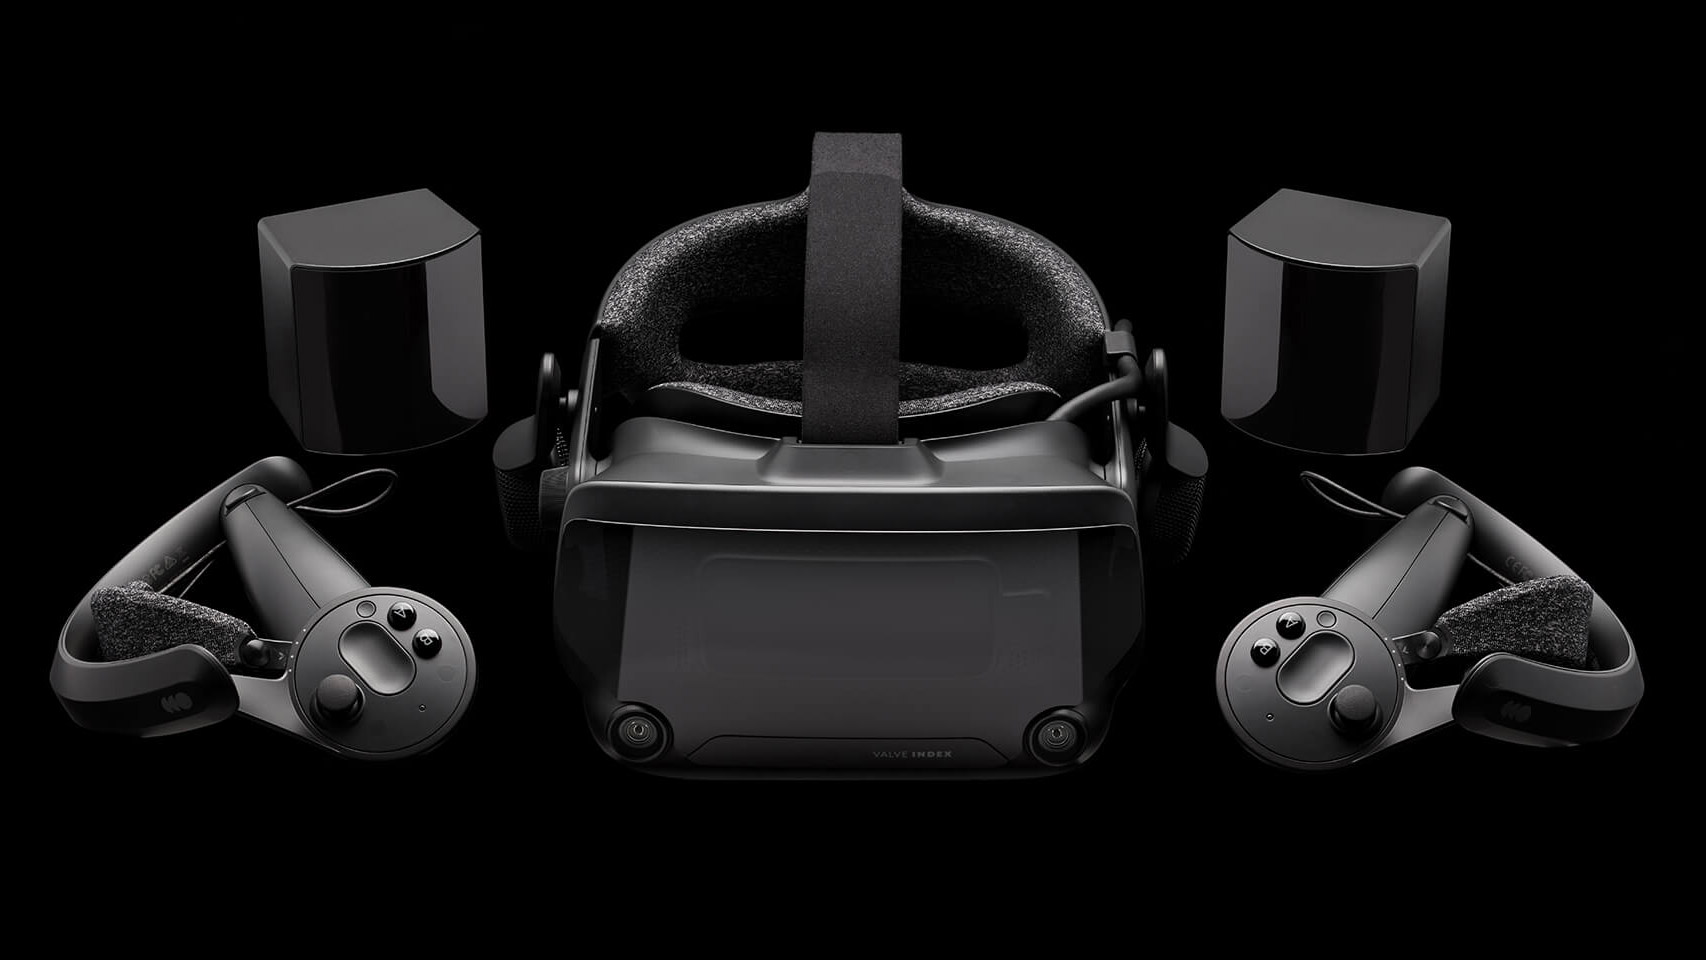 Valve Index Headset Sold Out in Some Regions After Half-Life: Alyx